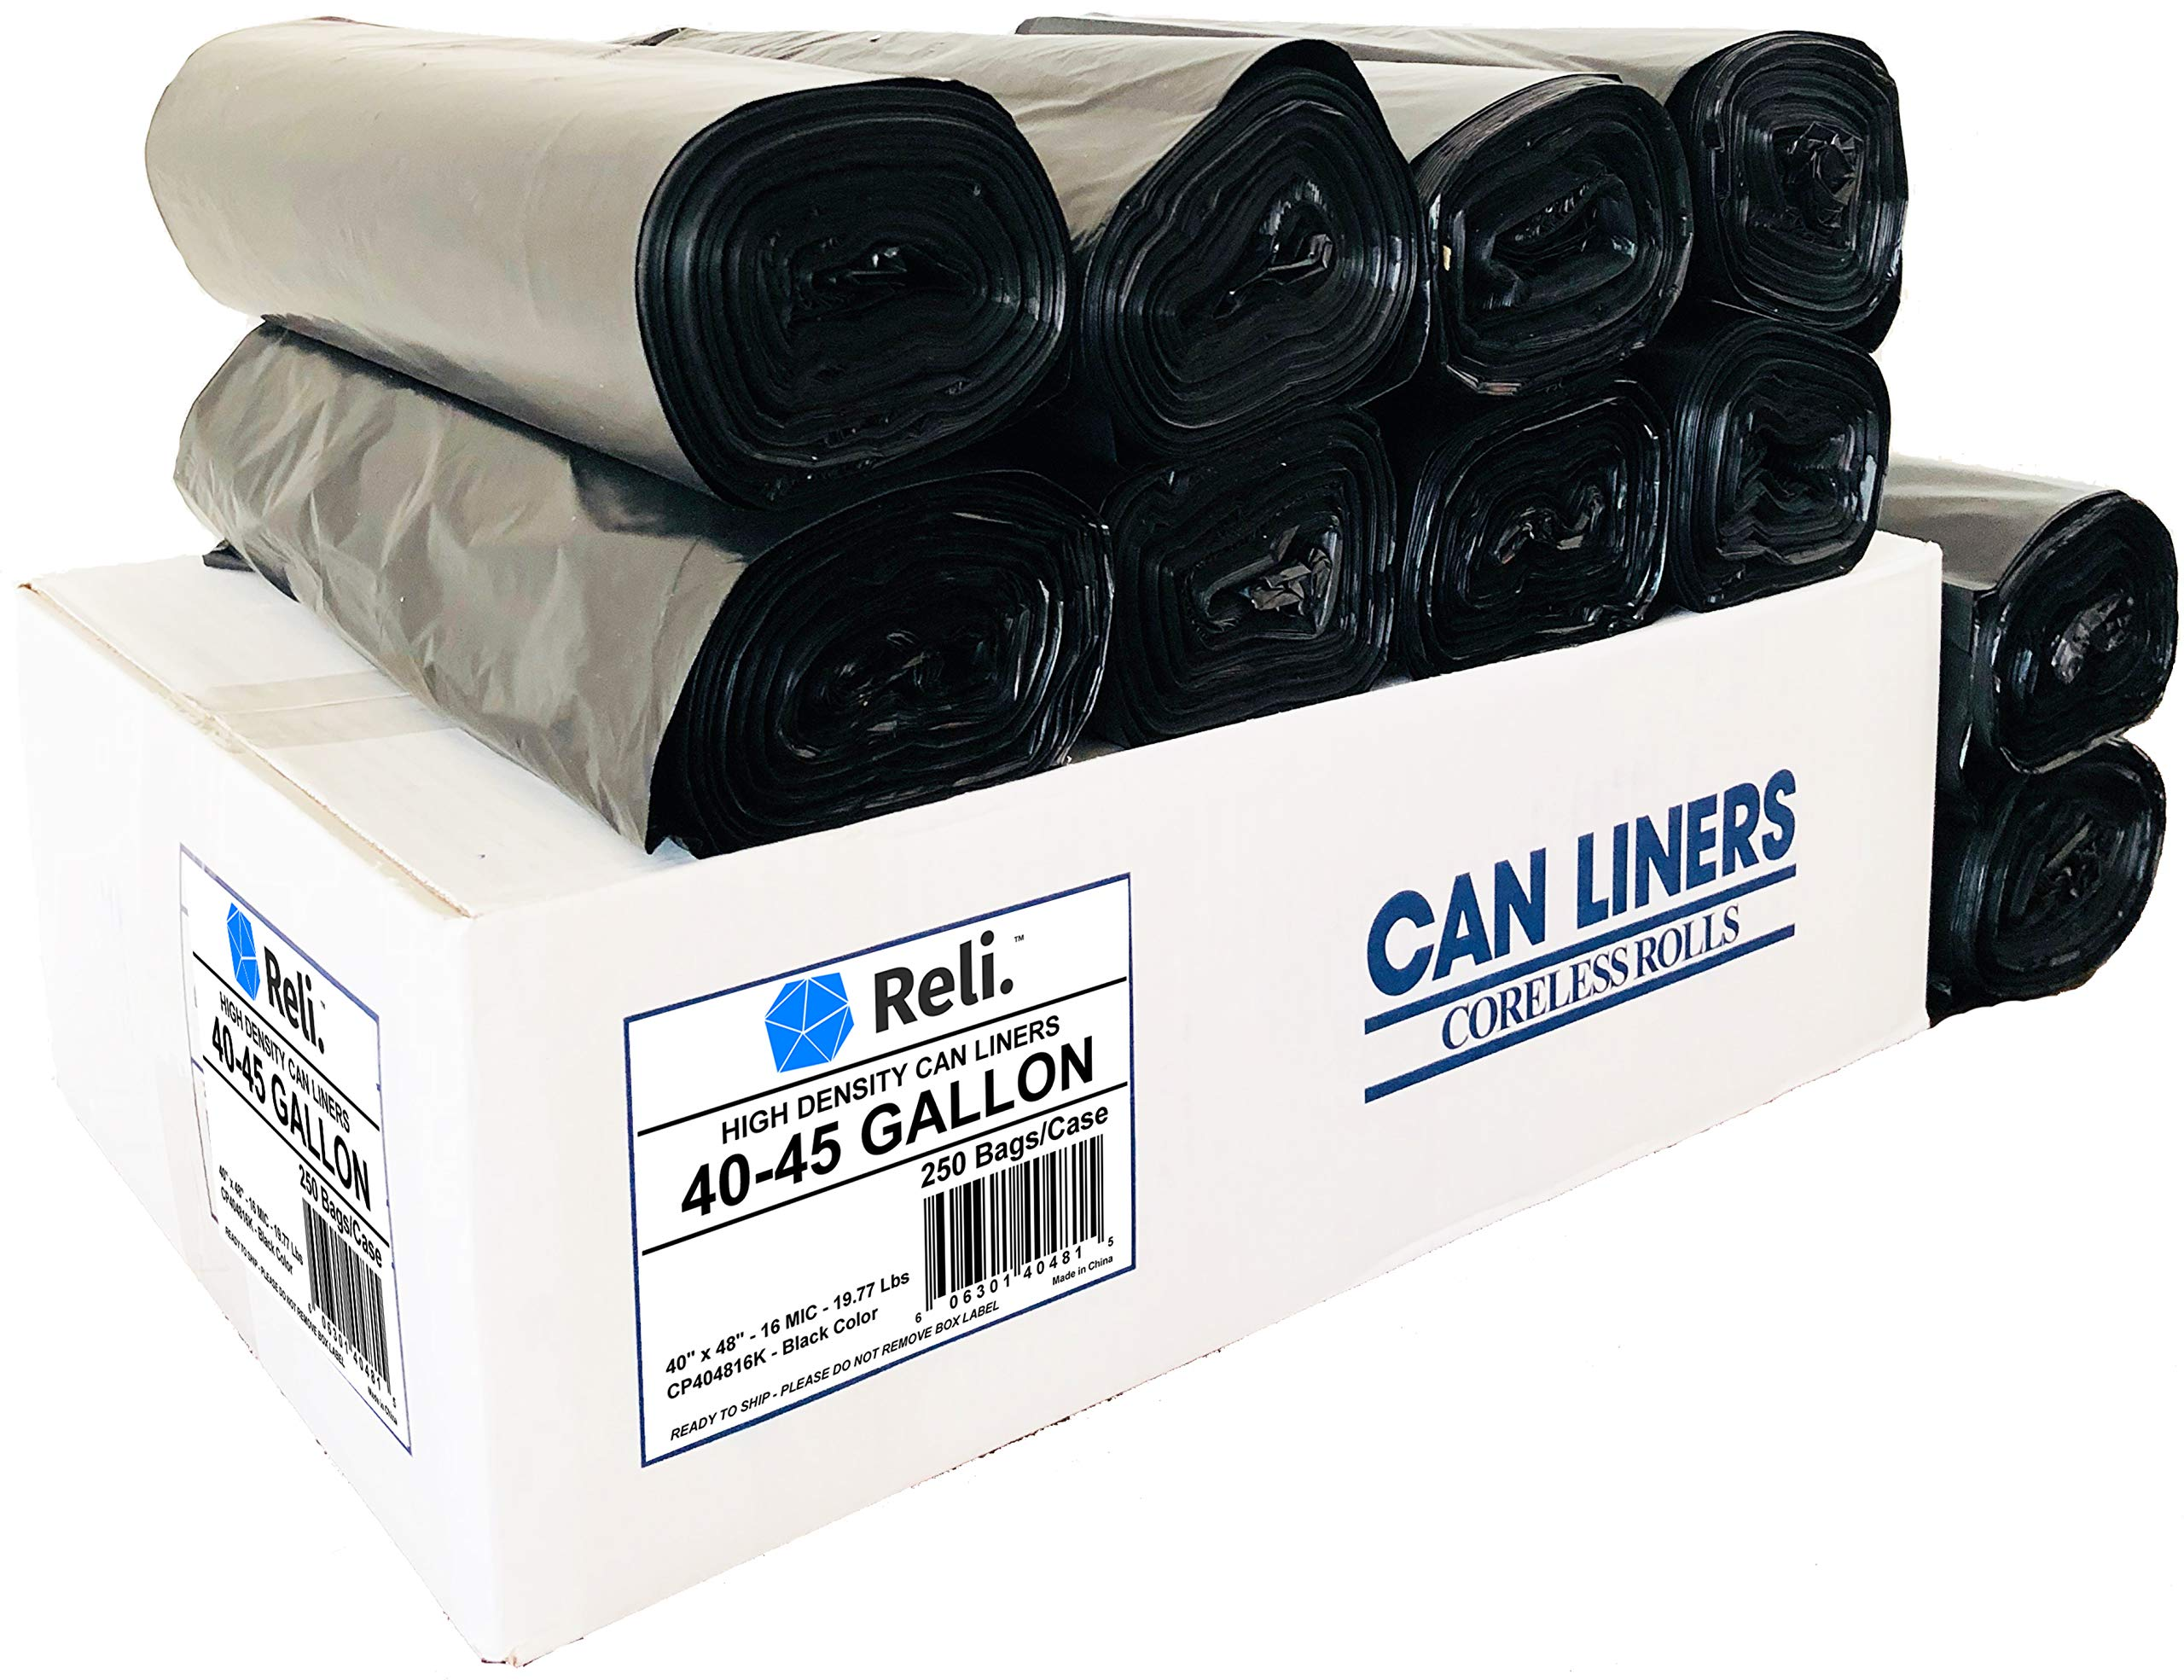 Reli. Trash Bags, 40-45 Gallon (250 Count Wholesale) - Star Seal High Density Rolls (Black) - Can Liners, Garbage Bags with 40 Gallon (40 Gal) to 45 Gallon (45 Gal) Capacity